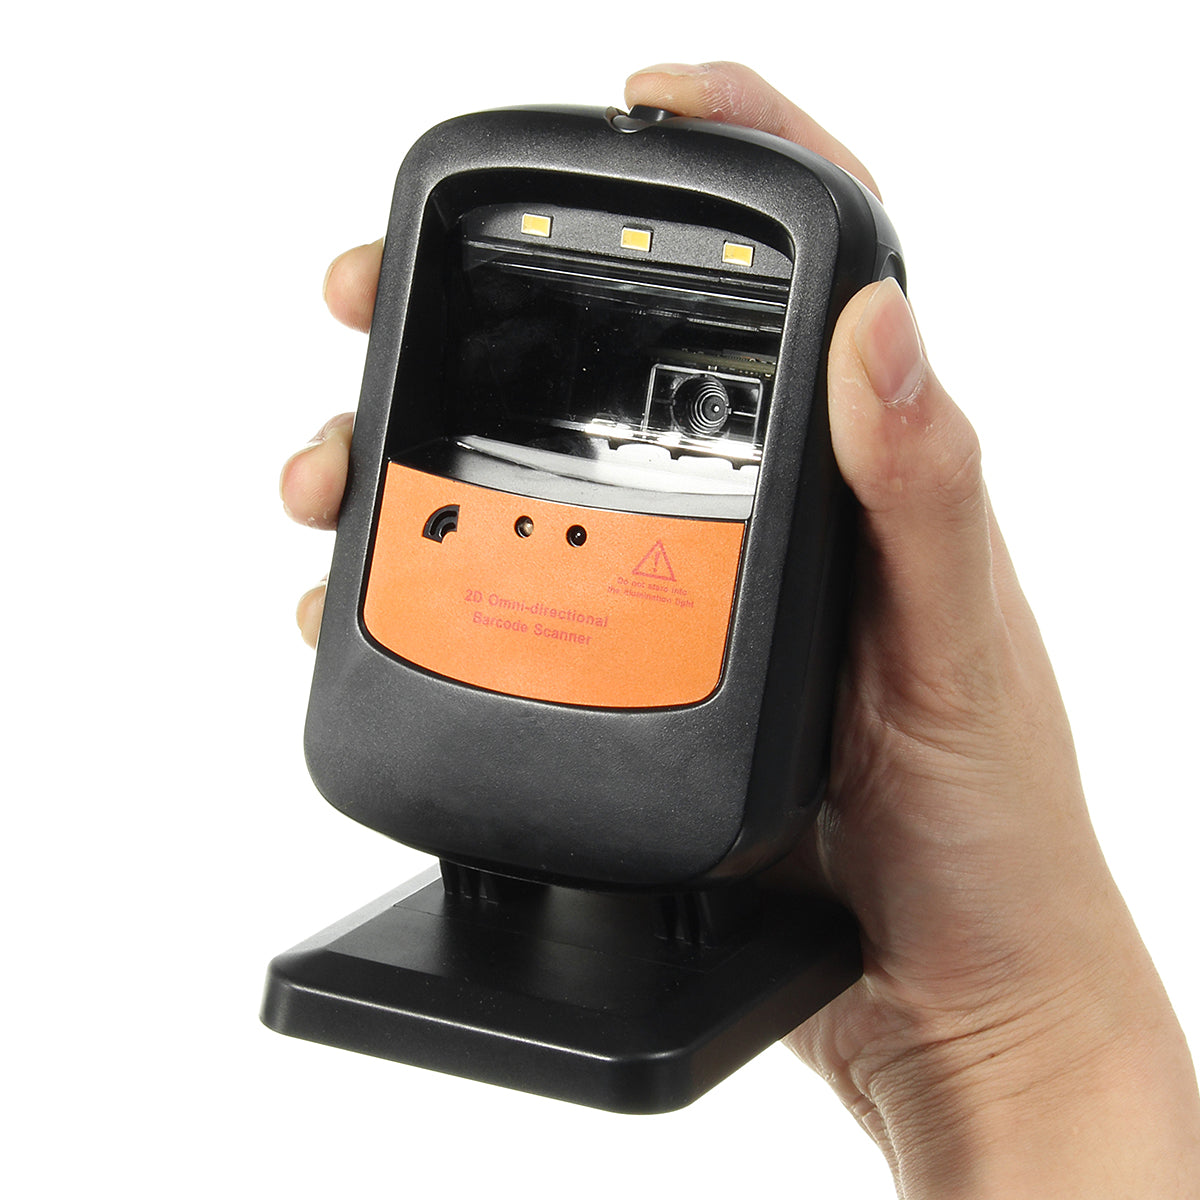 Rotatable M8106 Hands-free Handheld 1D 2D Barcode Scanner with USB Cable UPC EAN